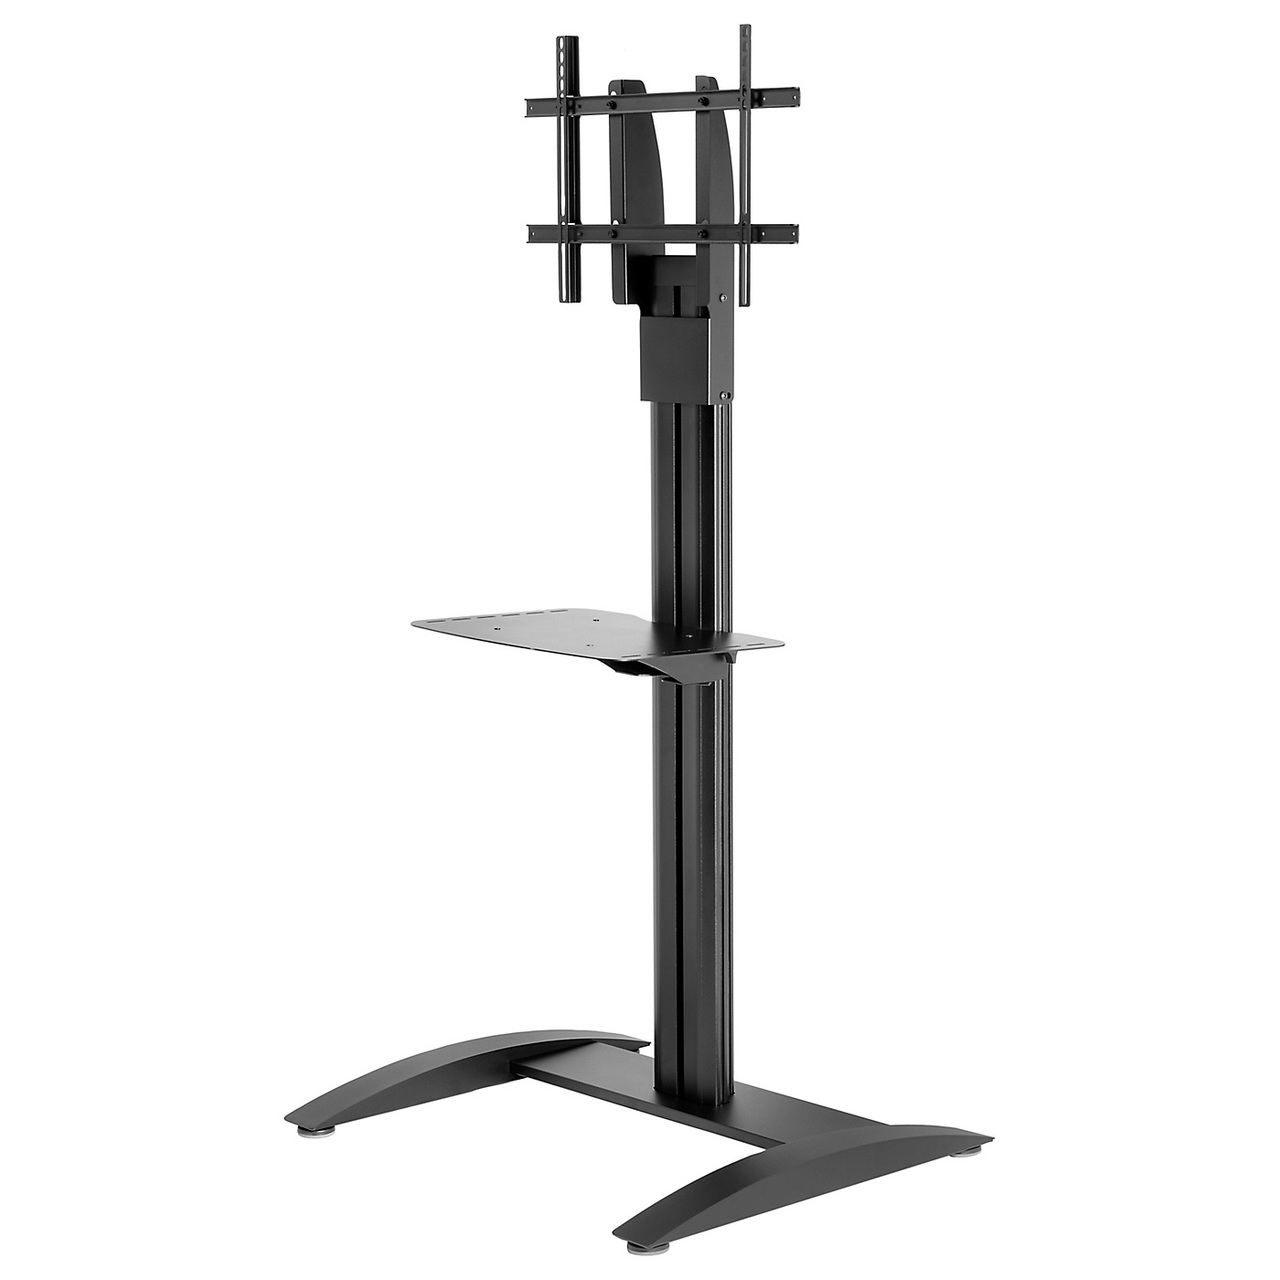 Peerless SS560G SmartMount Univeral Stand For up to 75 Inch TVs w/Tint